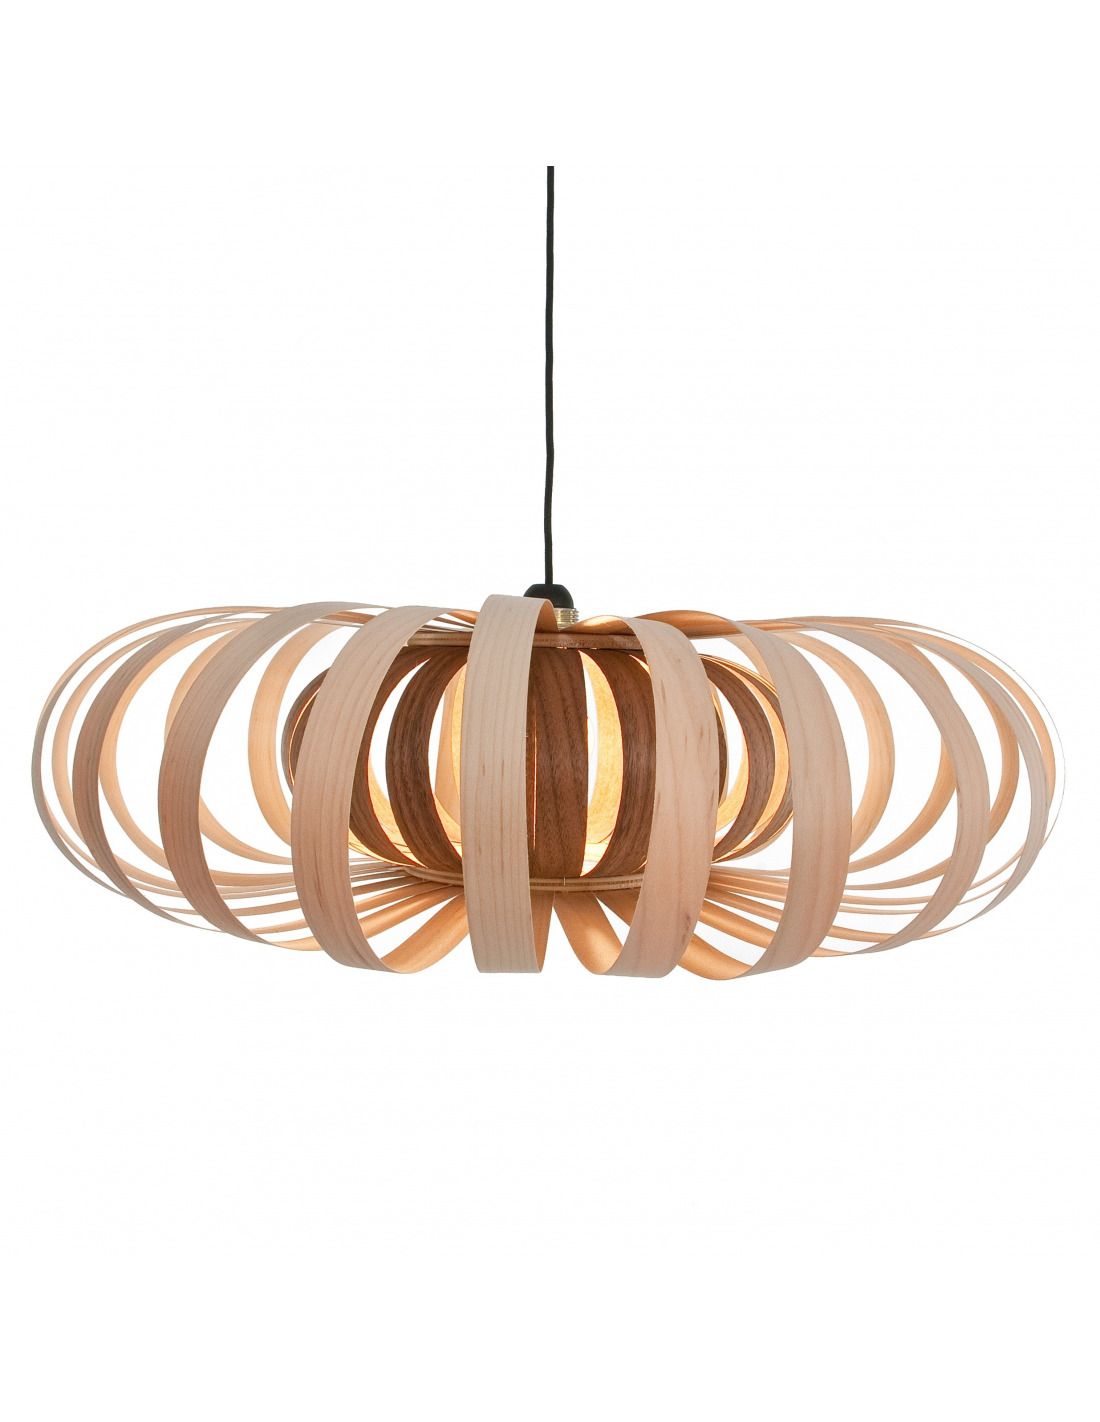 Suspension Phi en bois d'erable design Otoko # Suspension Bois Design